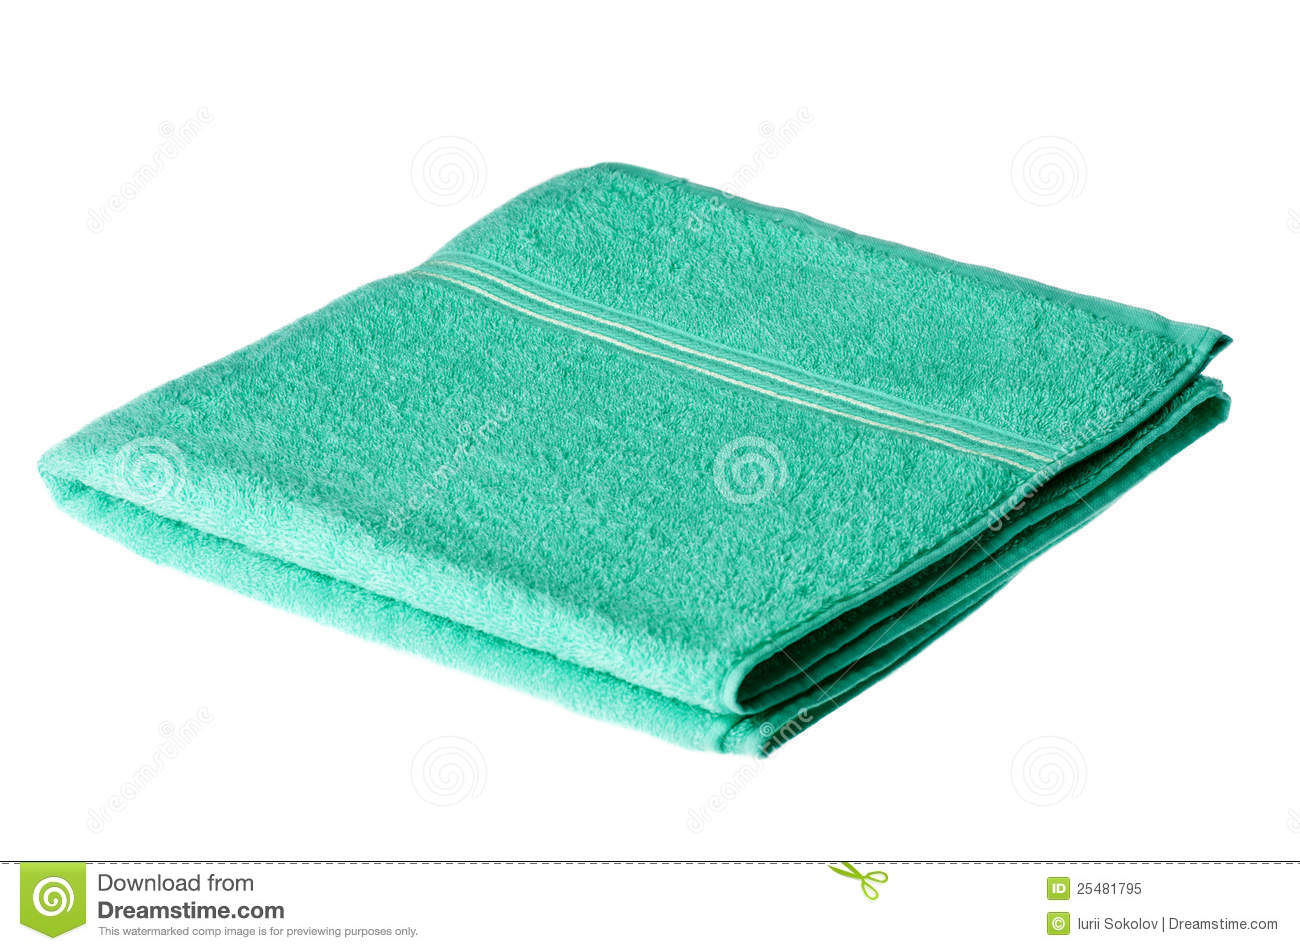 Washcloth on head clipart clipart images gallery for free.